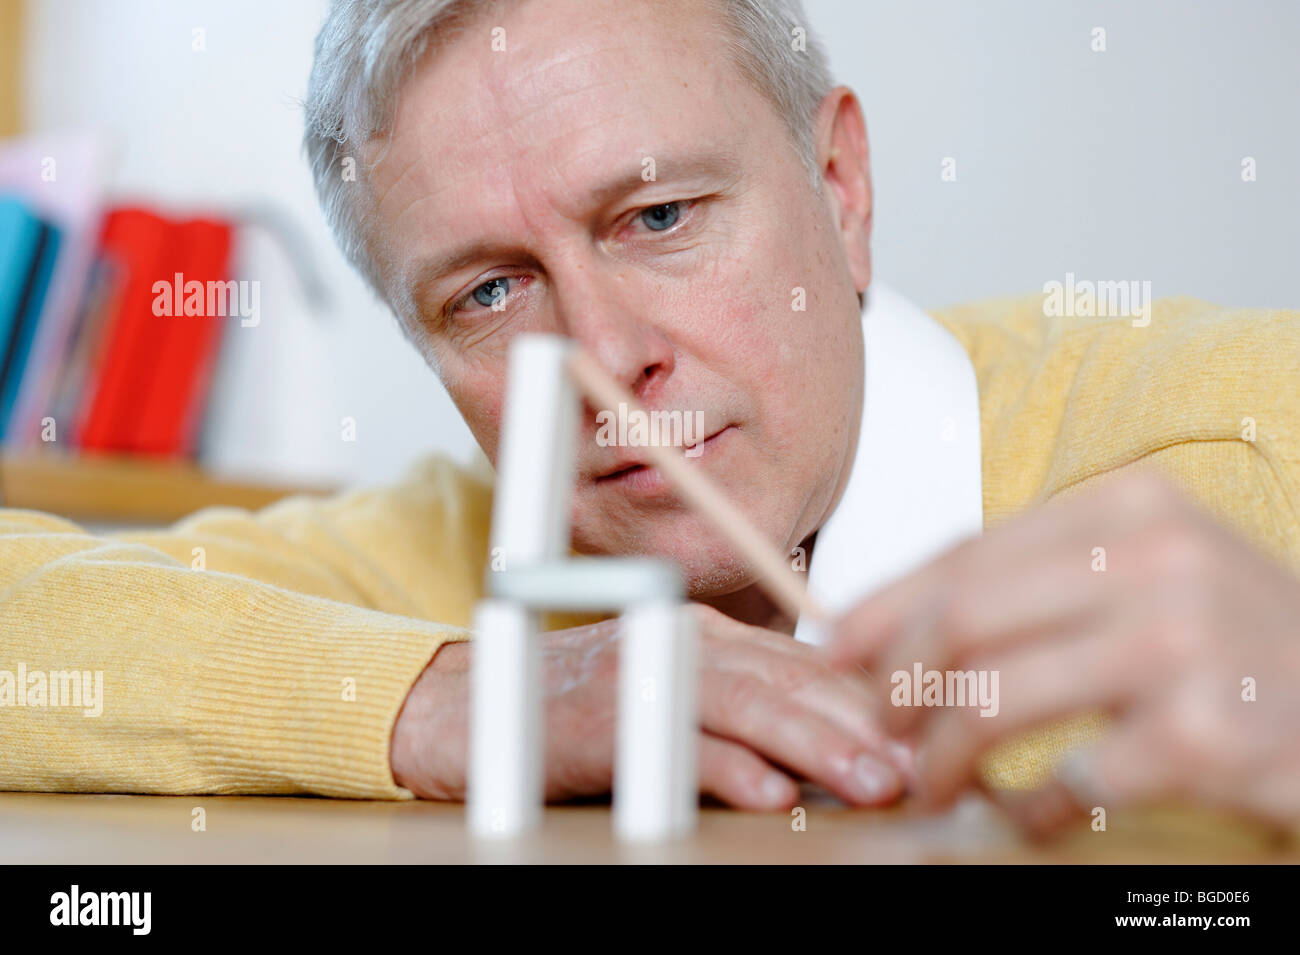 Man, engineer, inventor, architect thinking, playing, inventing, planing, constructing - Stock Image